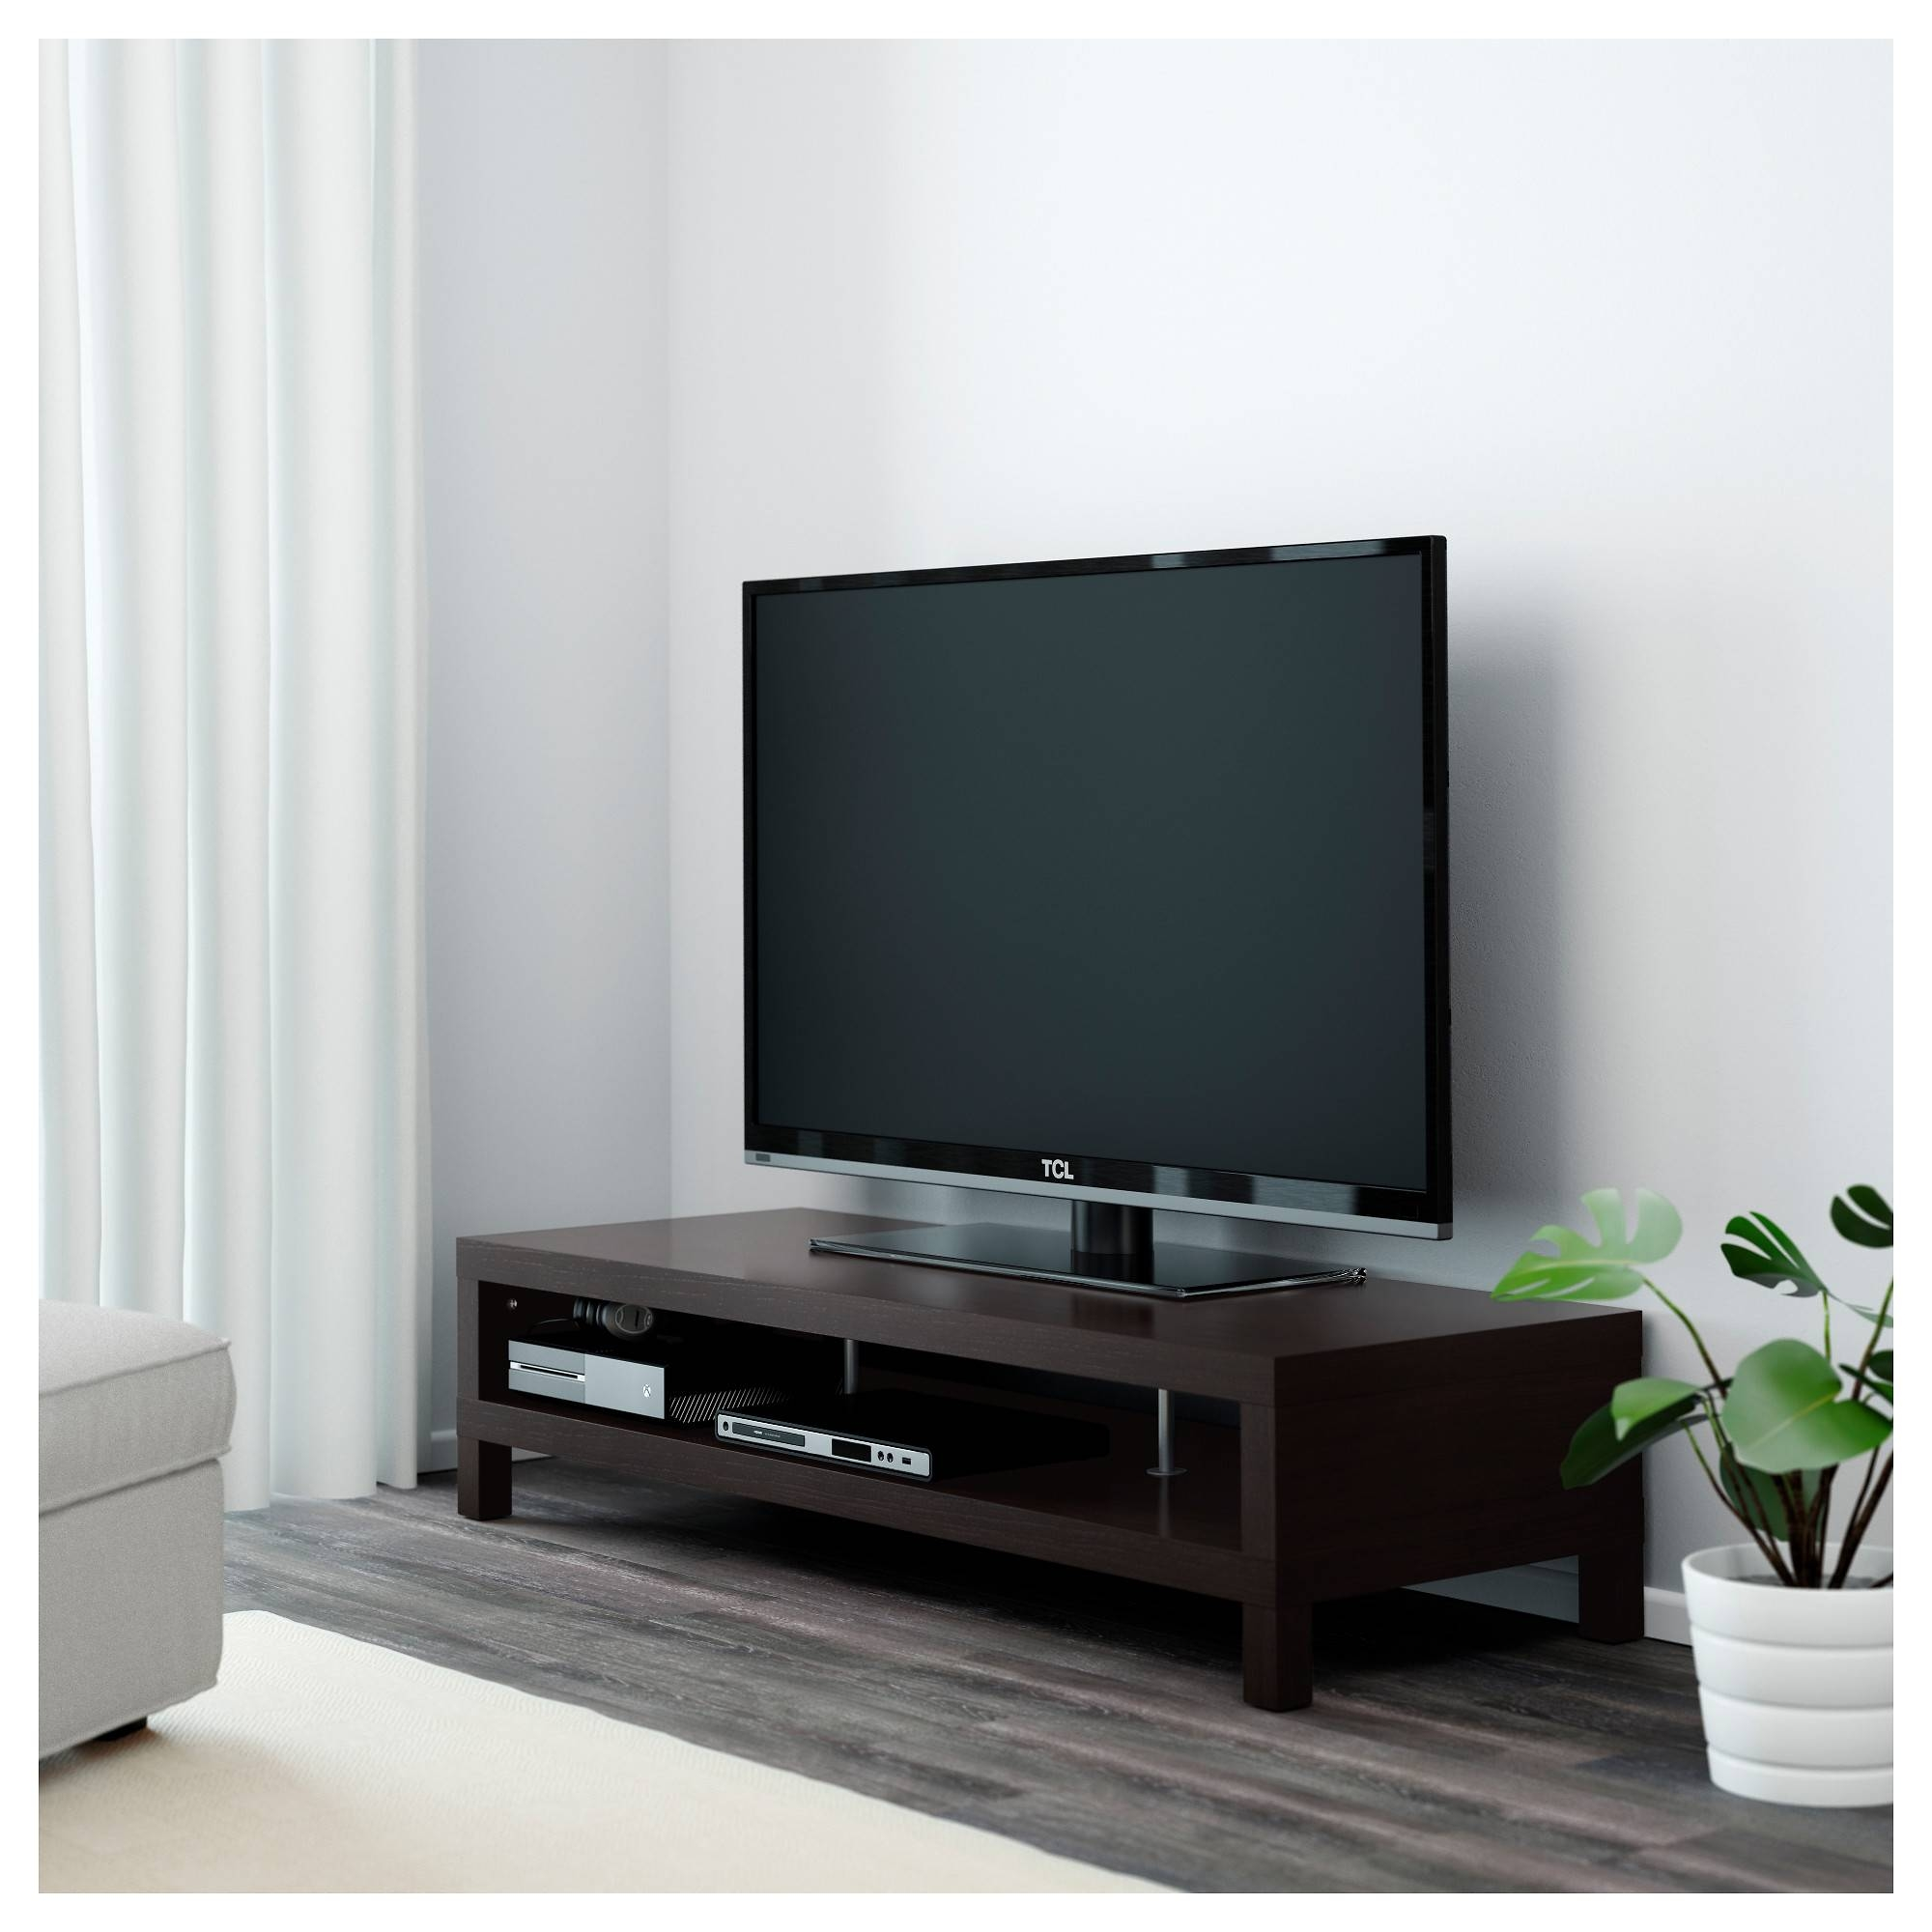 Lack Tv Unit - Ikea in Bench Tv Stands (Image 9 of 15)